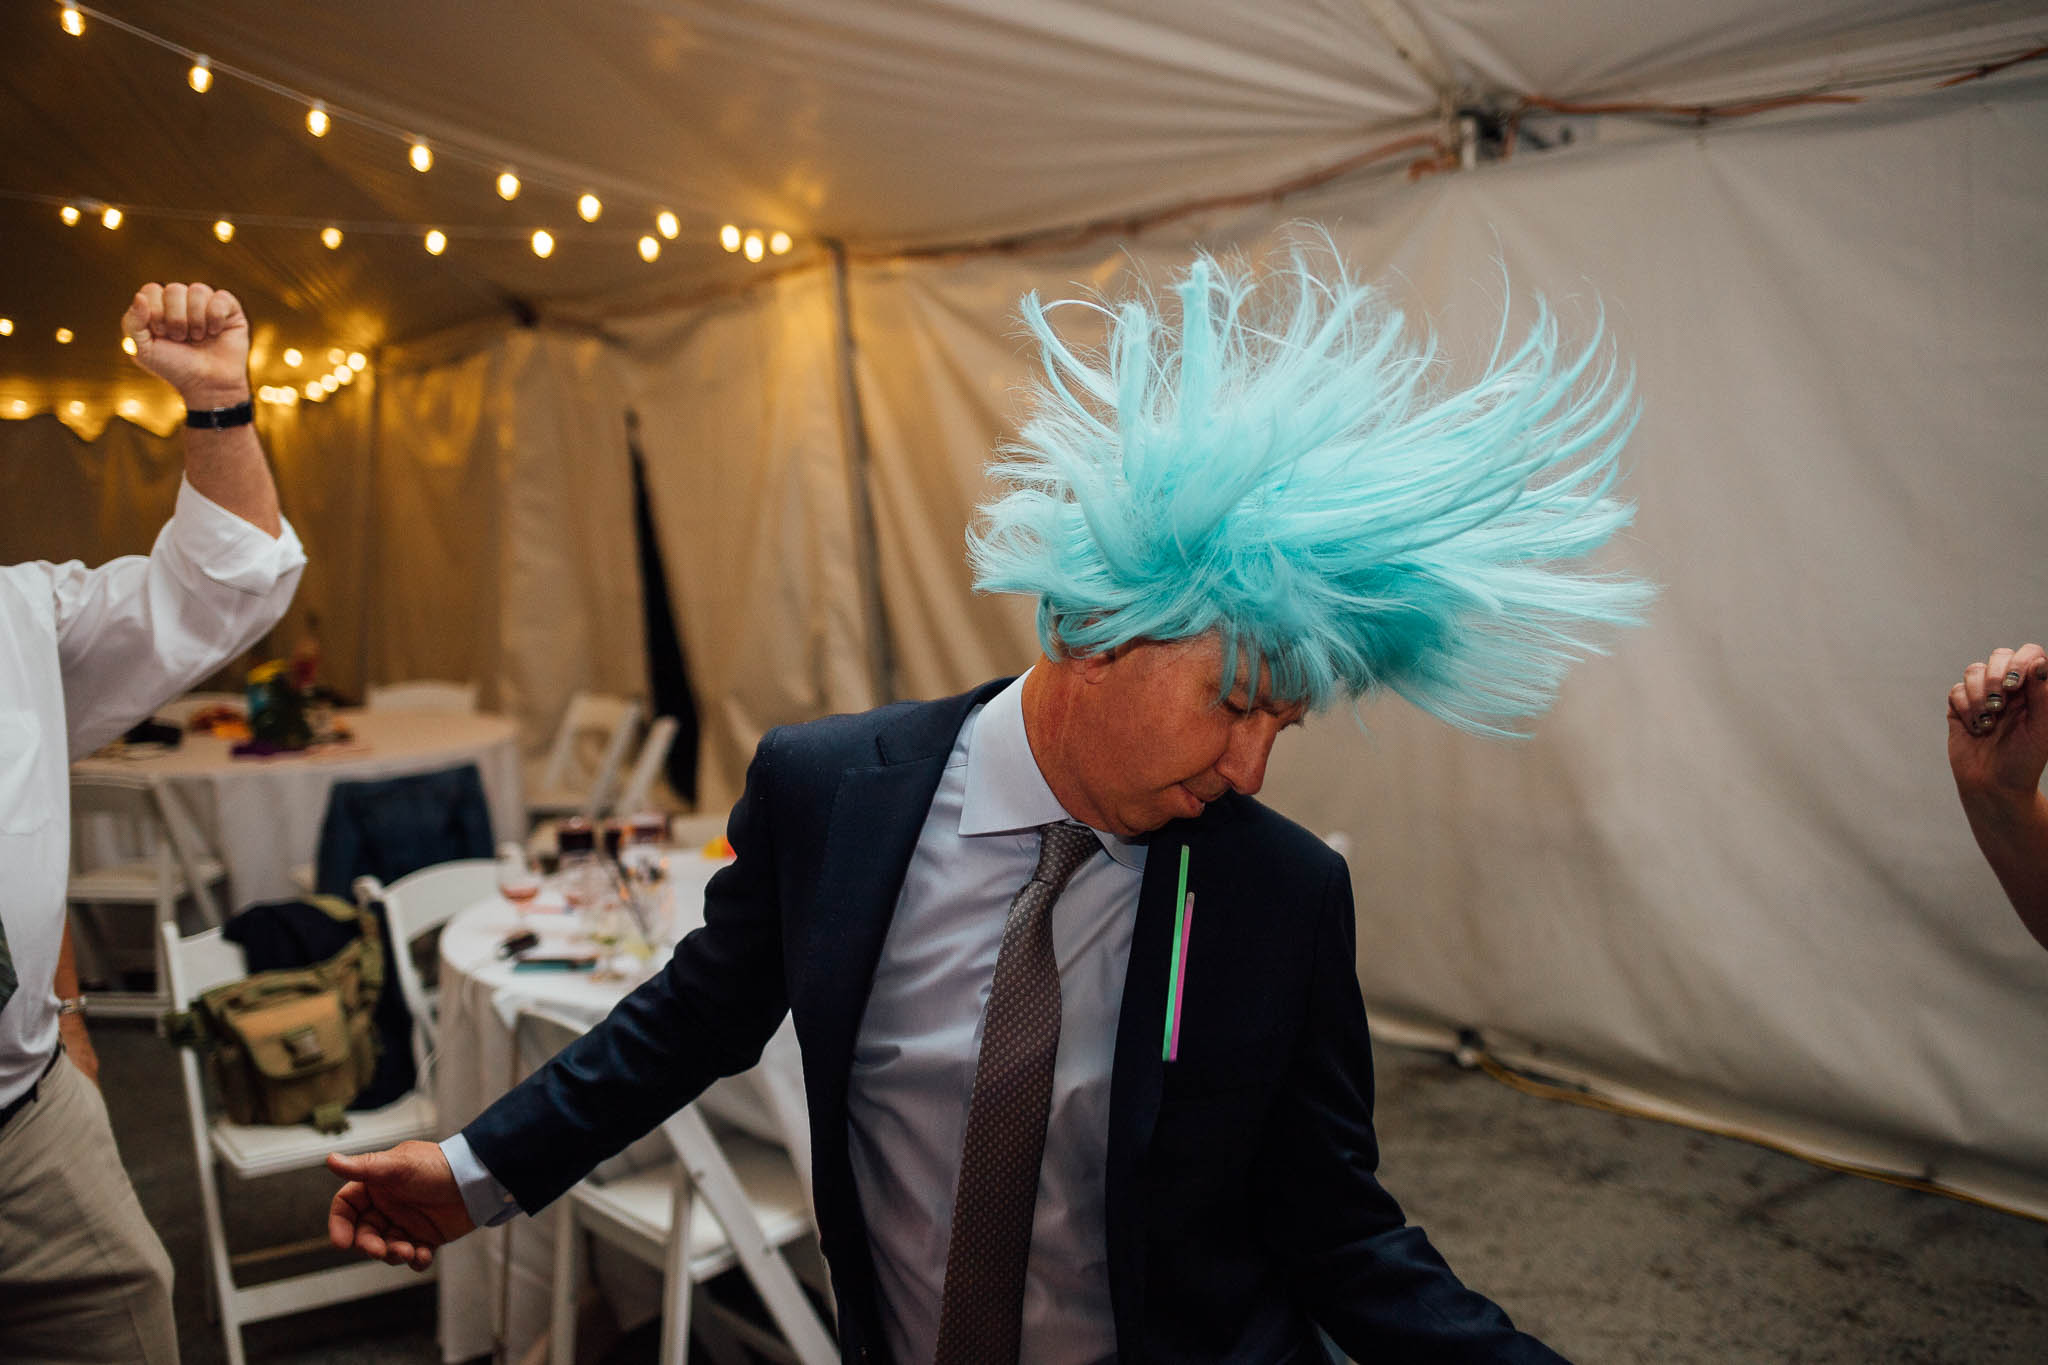 Wedding guest dancing with blue wig at wedding reception at Ten Peak Crested Butte Colorado